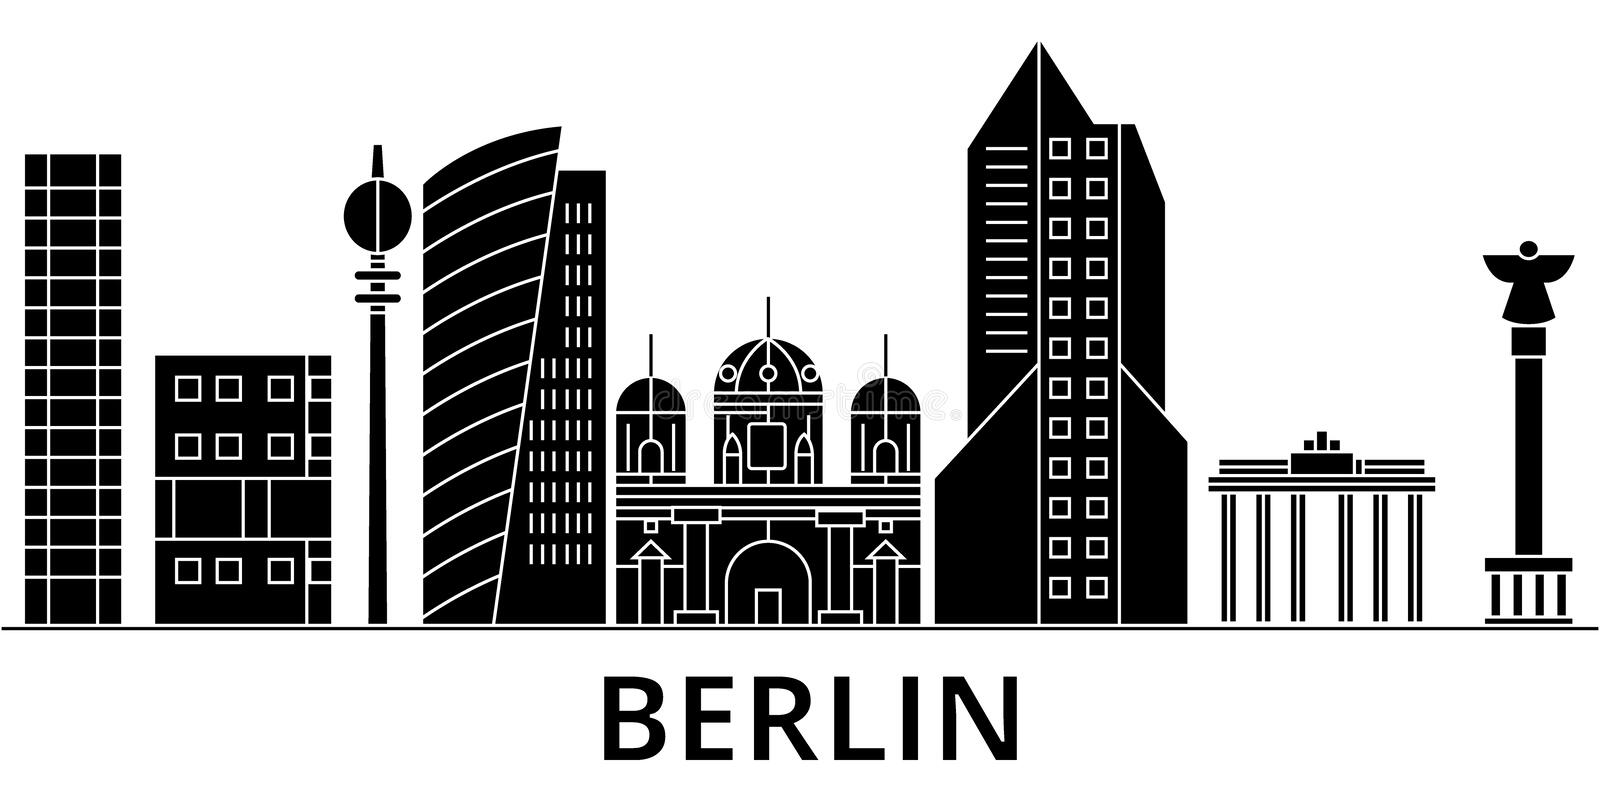 Berlin architecture vector city skyline, travel cityscape with landmarks, buildings, isolated sights on background royalty free illustration